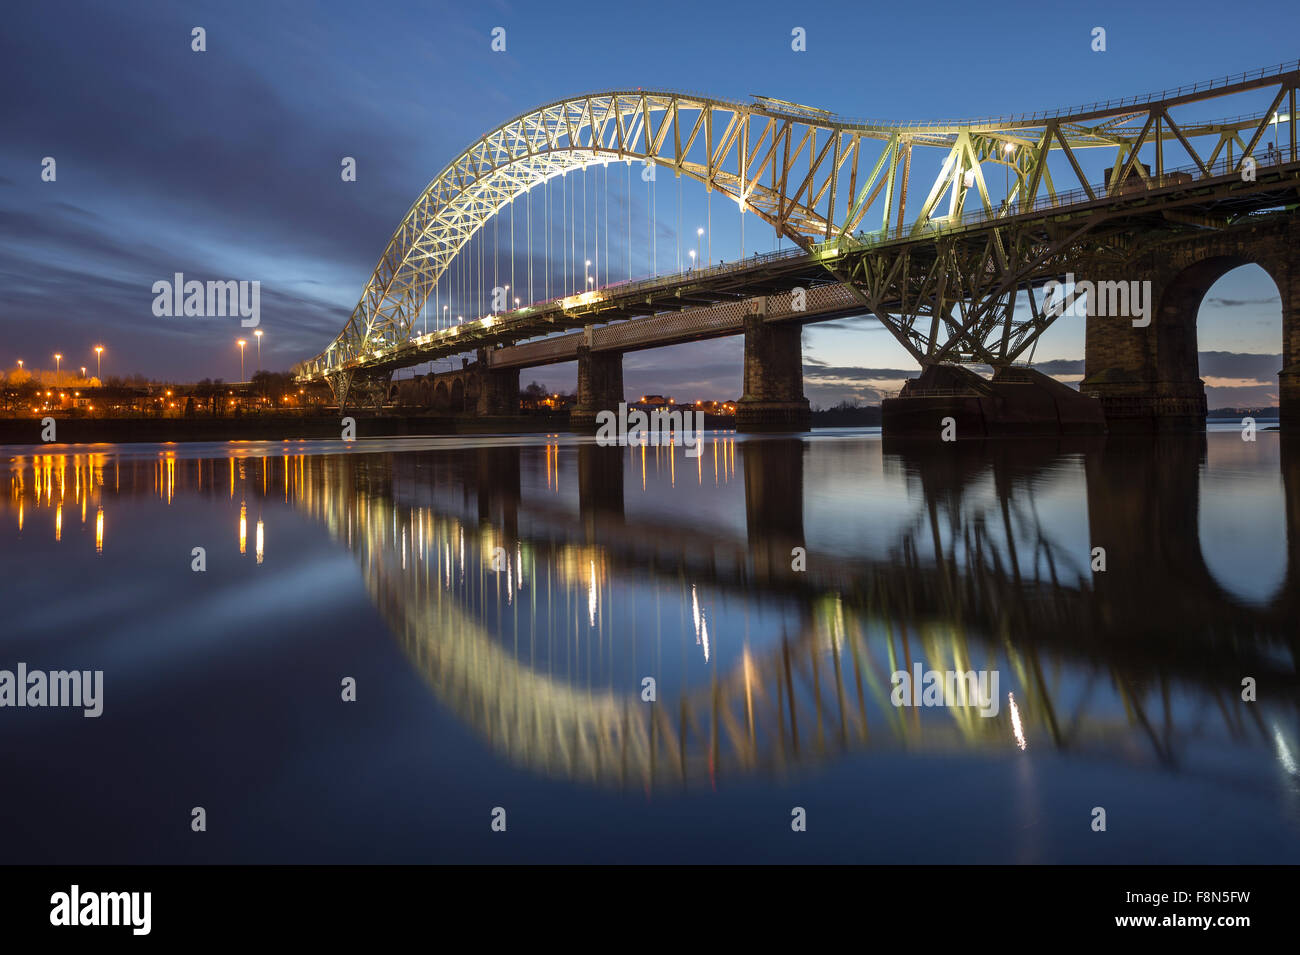 The Runcorn and Widnes Roadbridge crossing the River Mersey at Night, Cheshire, England - Stock Image